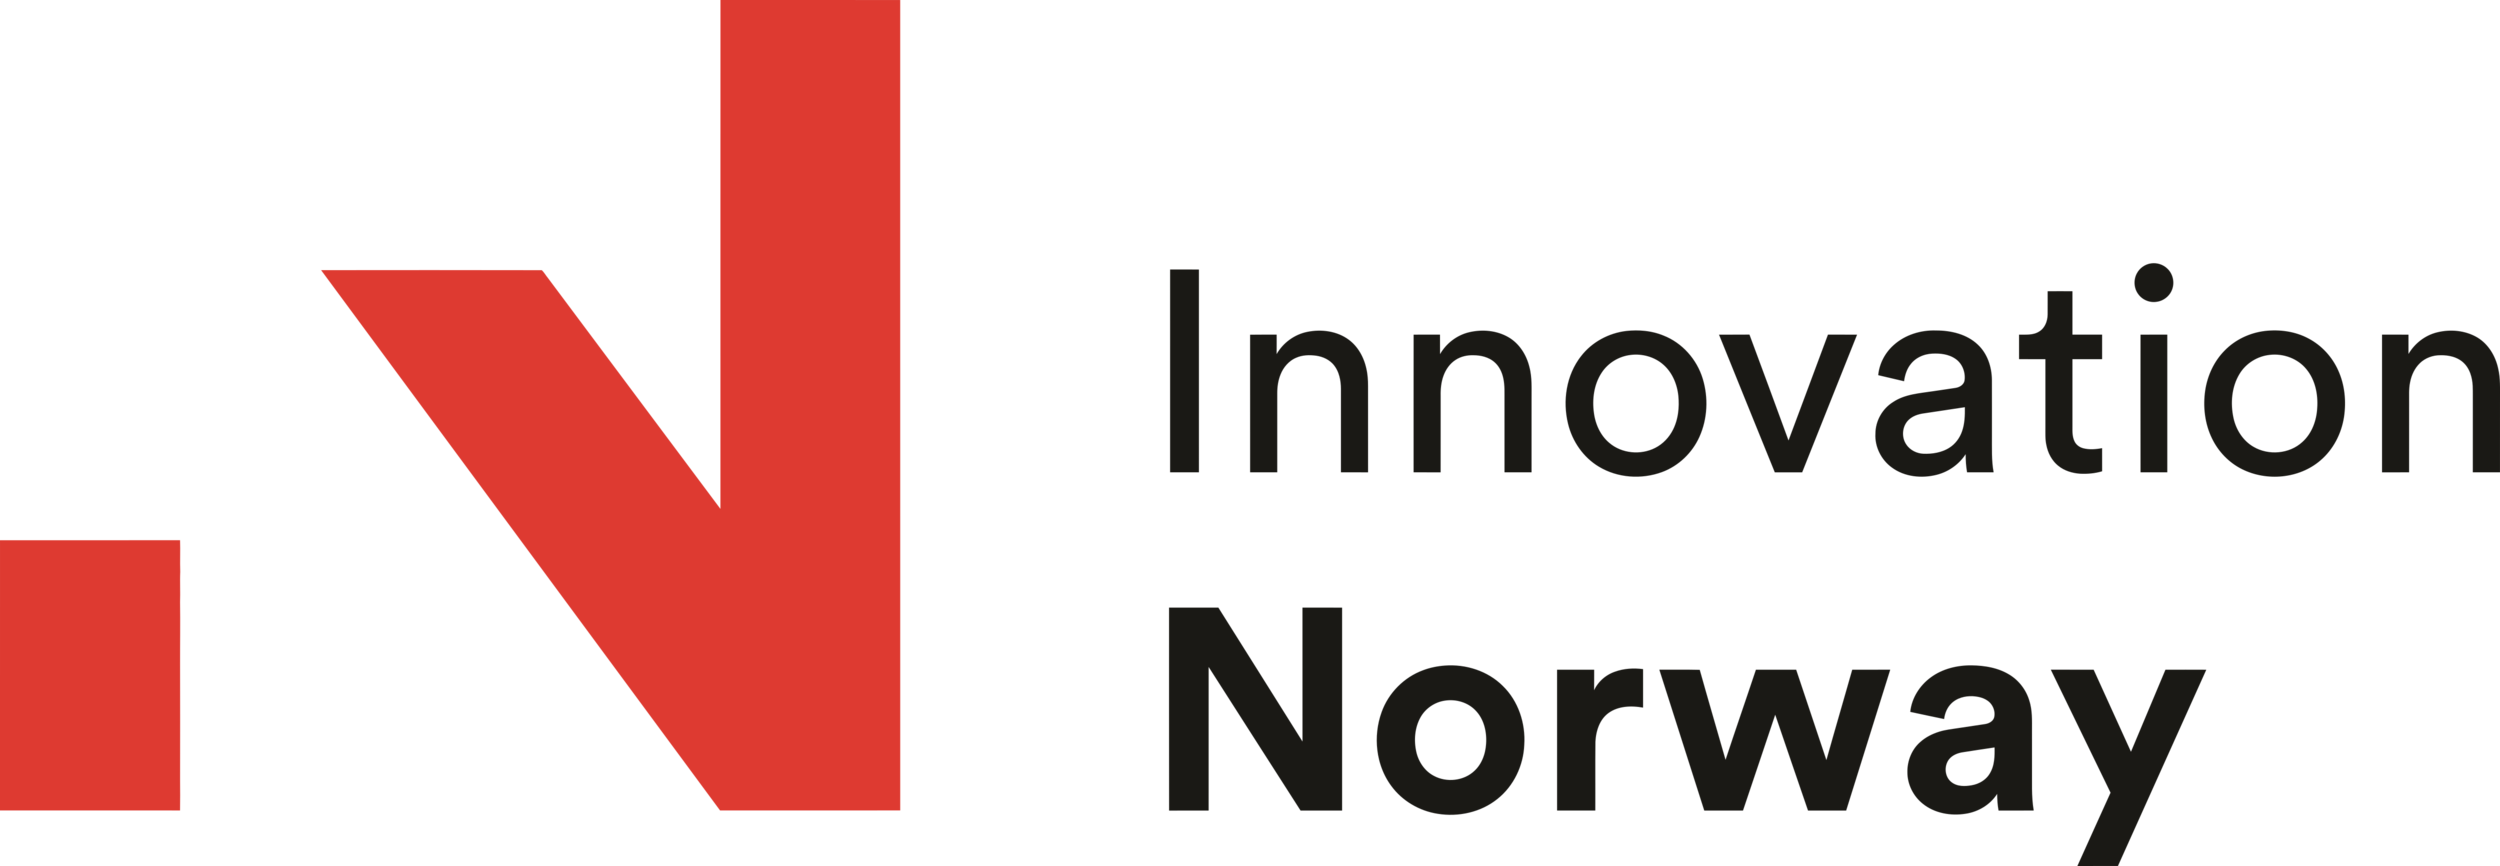 Innovation_Norway_Logo.png